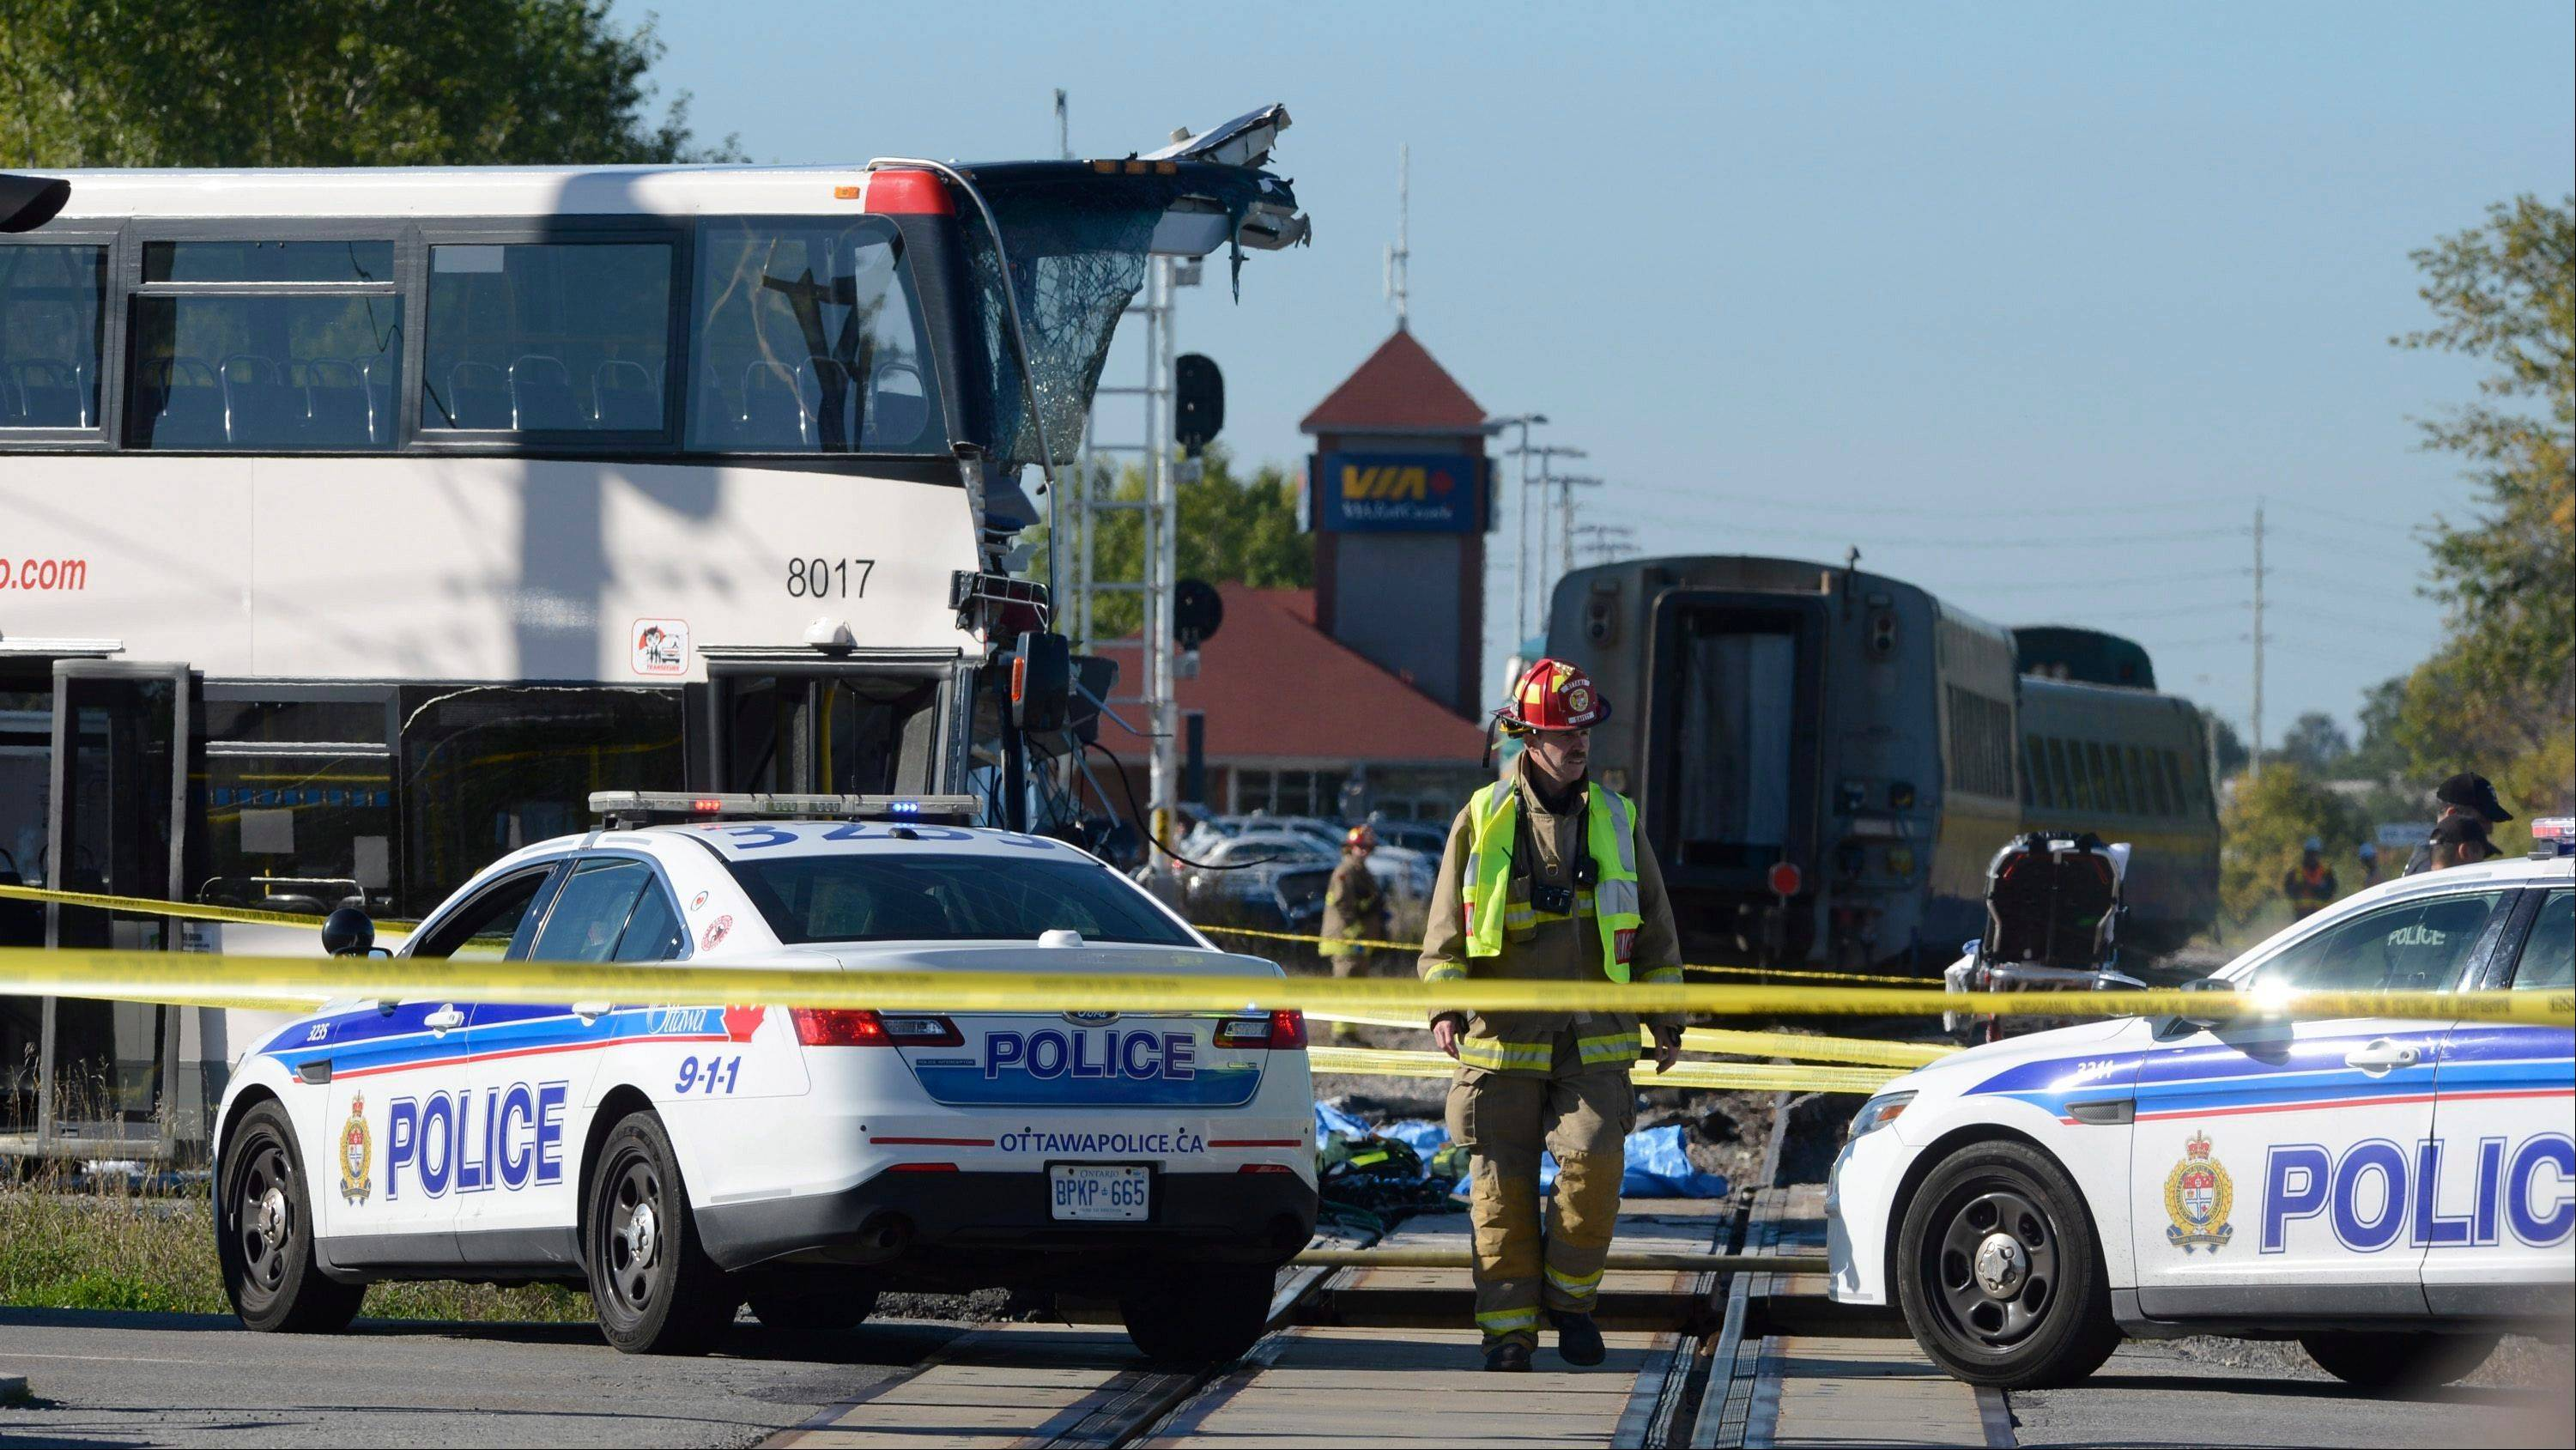 A firefighter surveys the scene of a collision with a train and a city bus in Ottawa, Ontario, Wednesday, Sept. 18, 2013. An Ottawa Fire spokesman said there are �multiple fatalities� and a number of people injured from the bus.